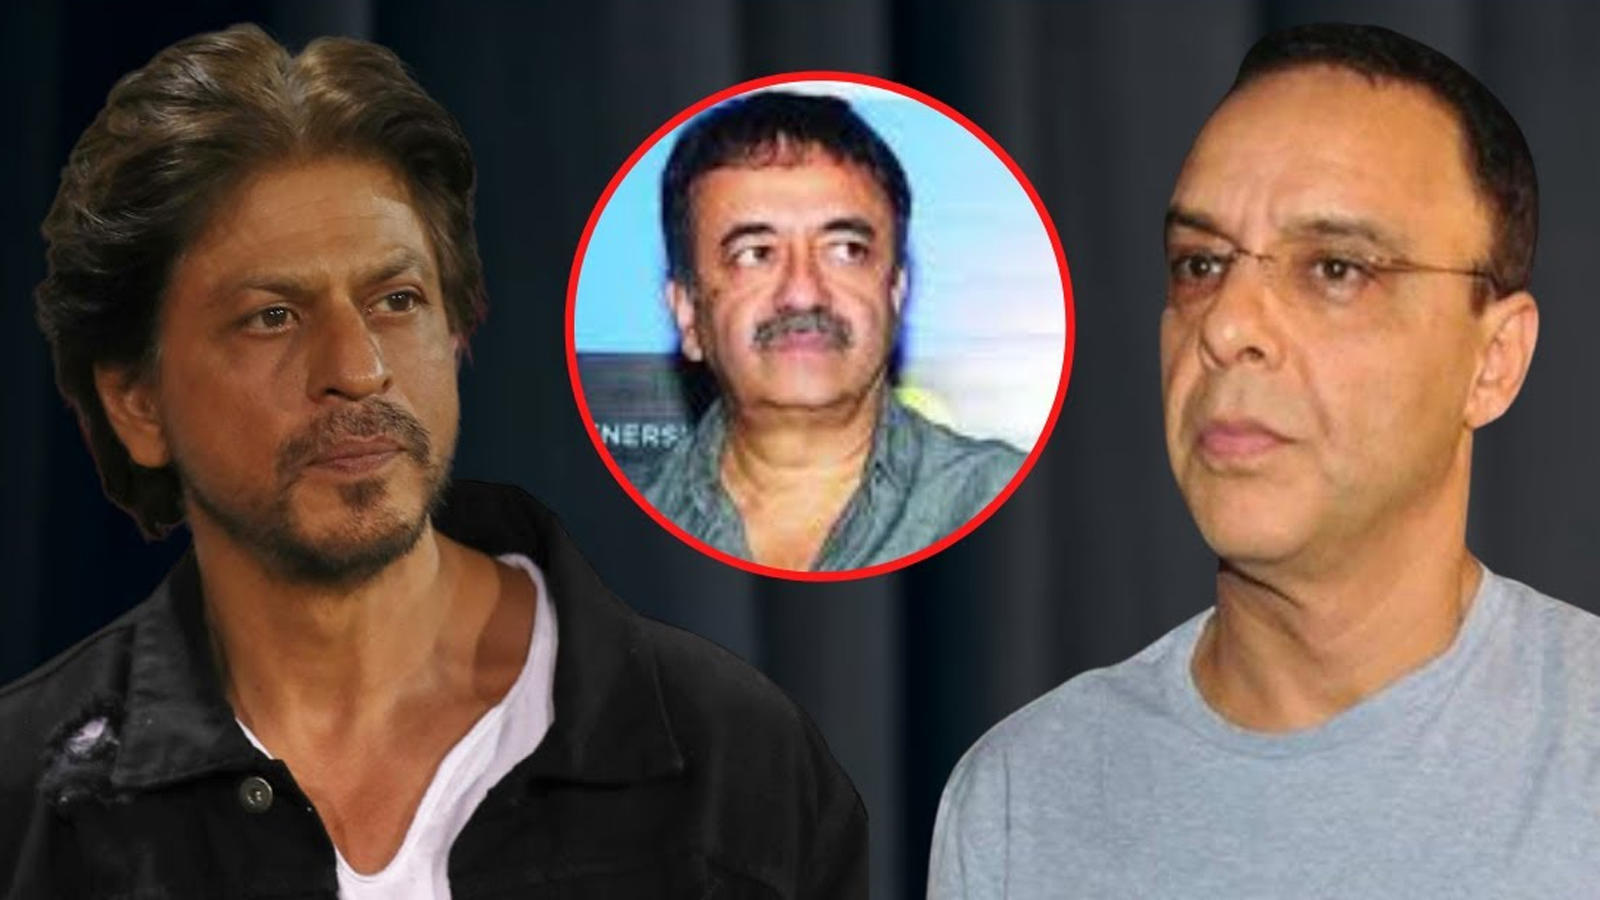 shah-rukh-khan-continues-his-history-of-not-working-with-vidhu-vinod-chopra-report